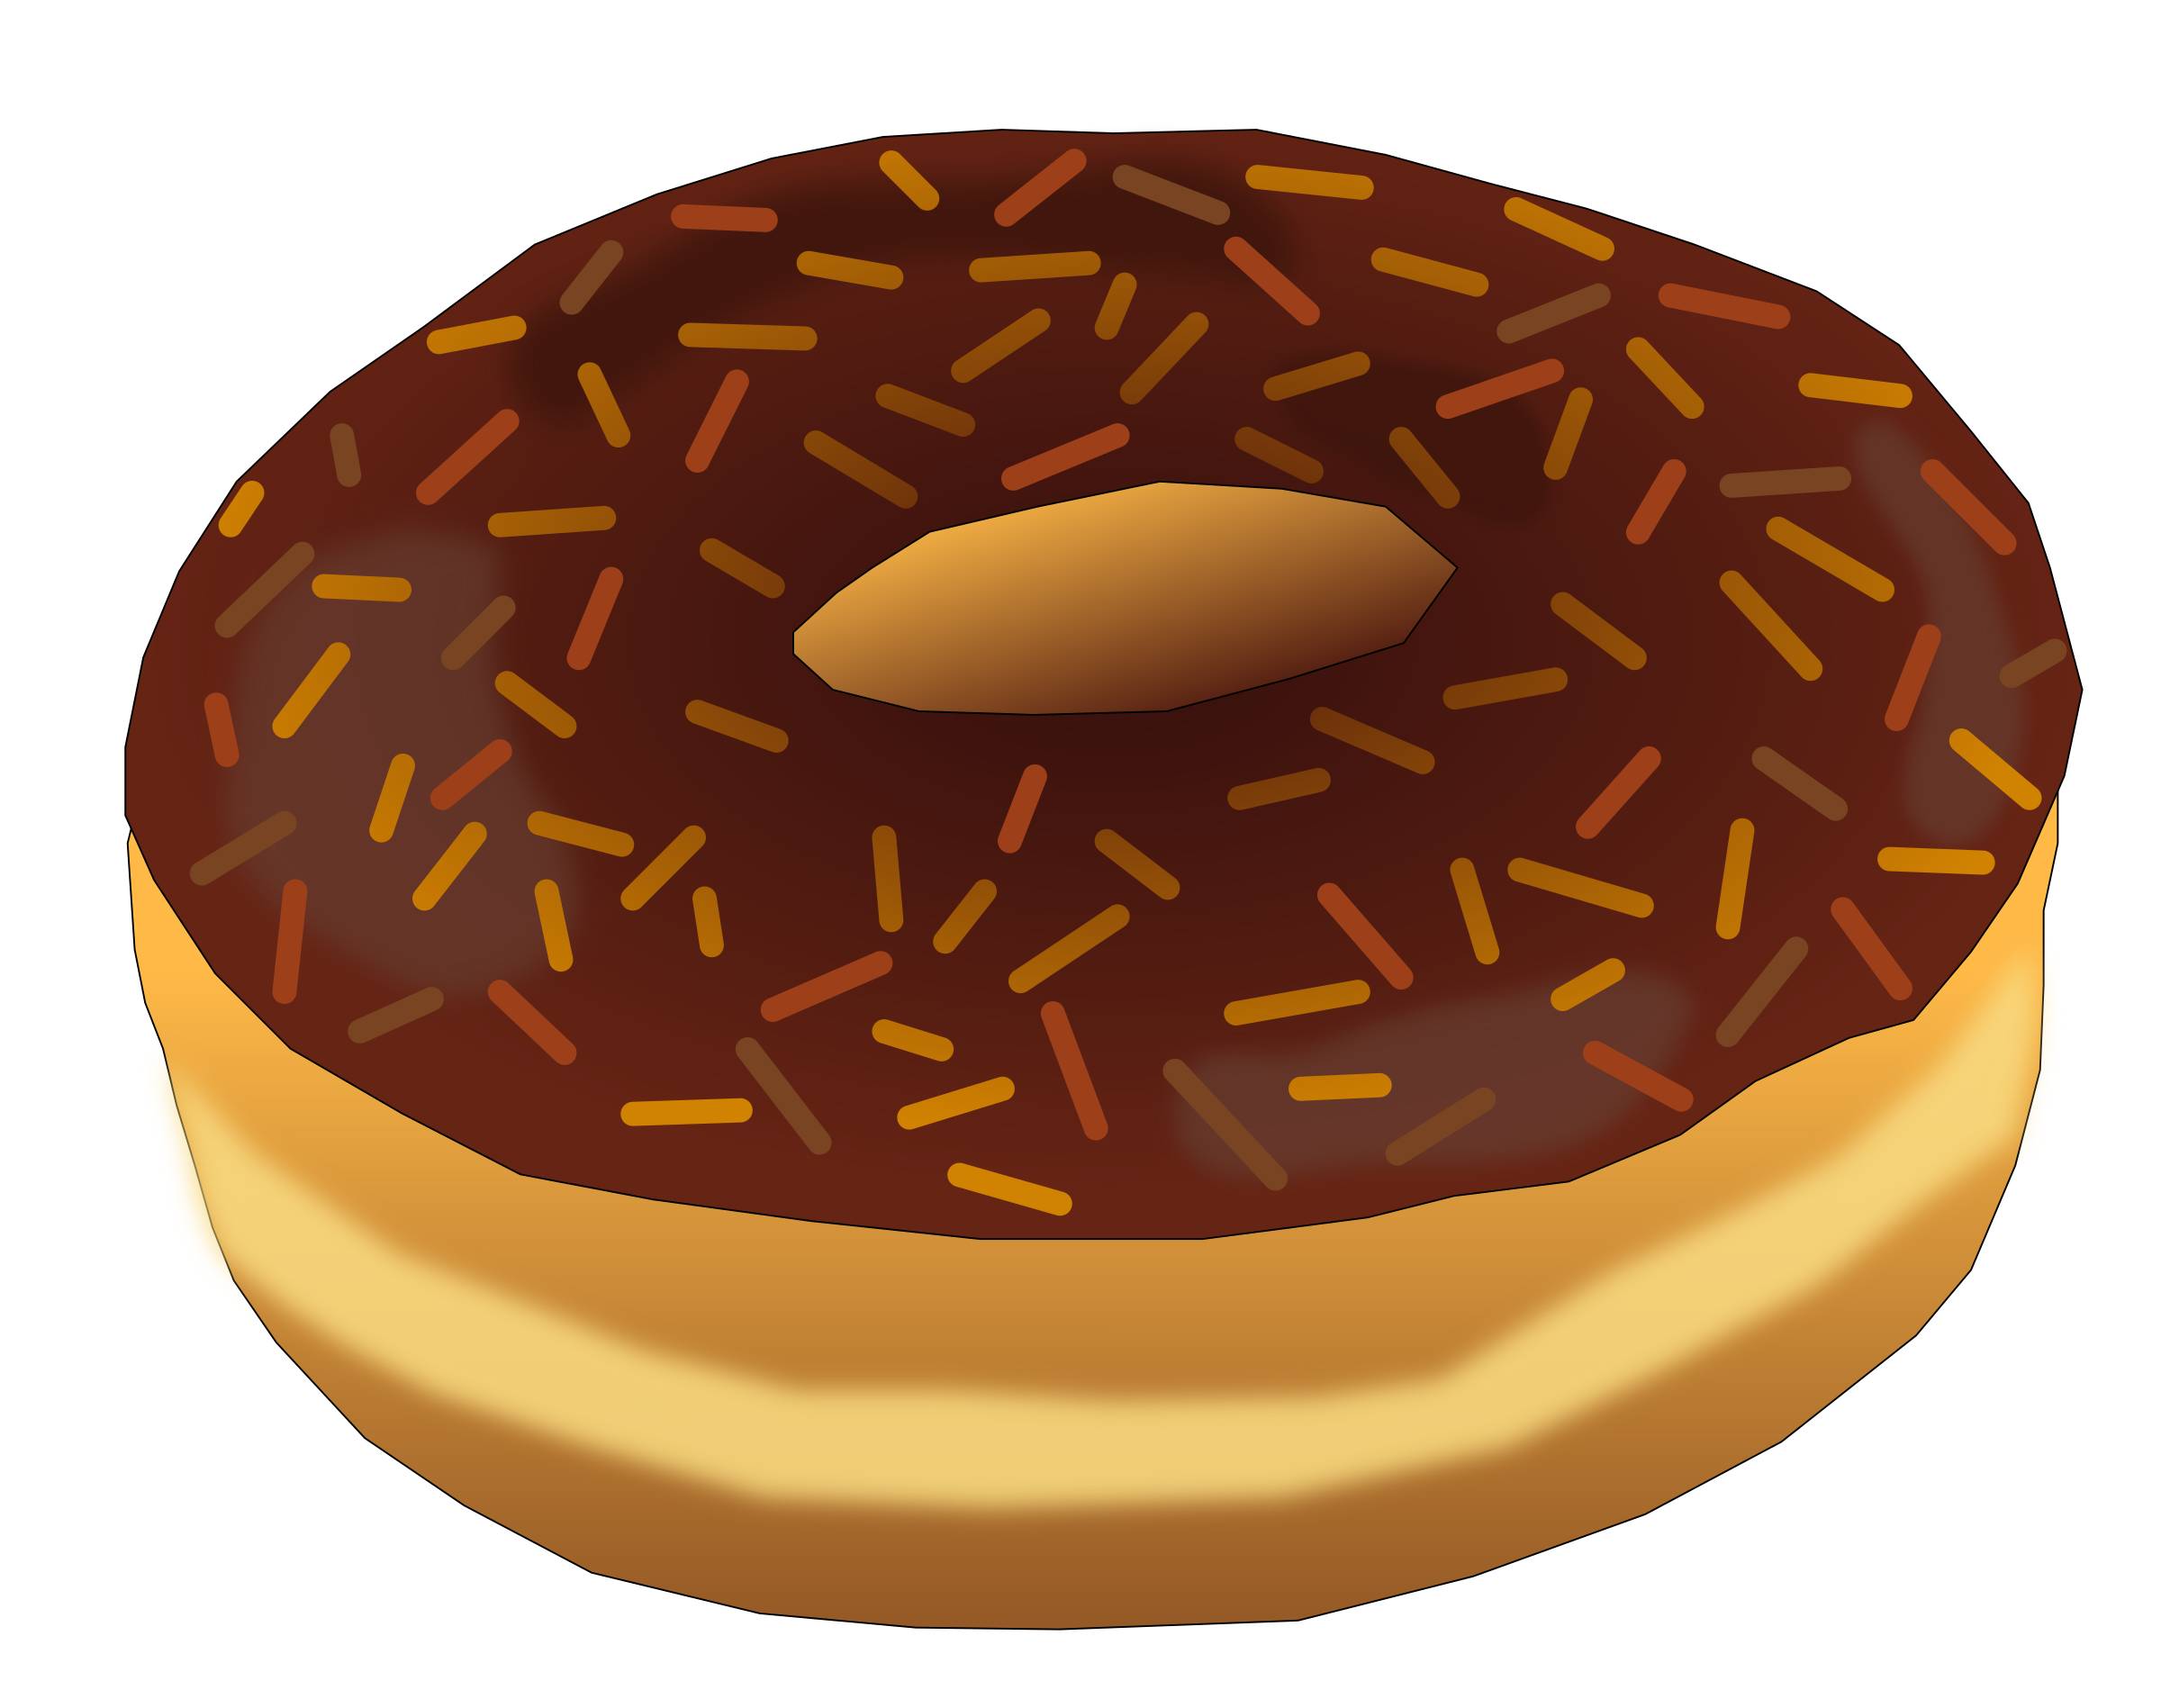 Brown Donut 2 by PinkJellyfish